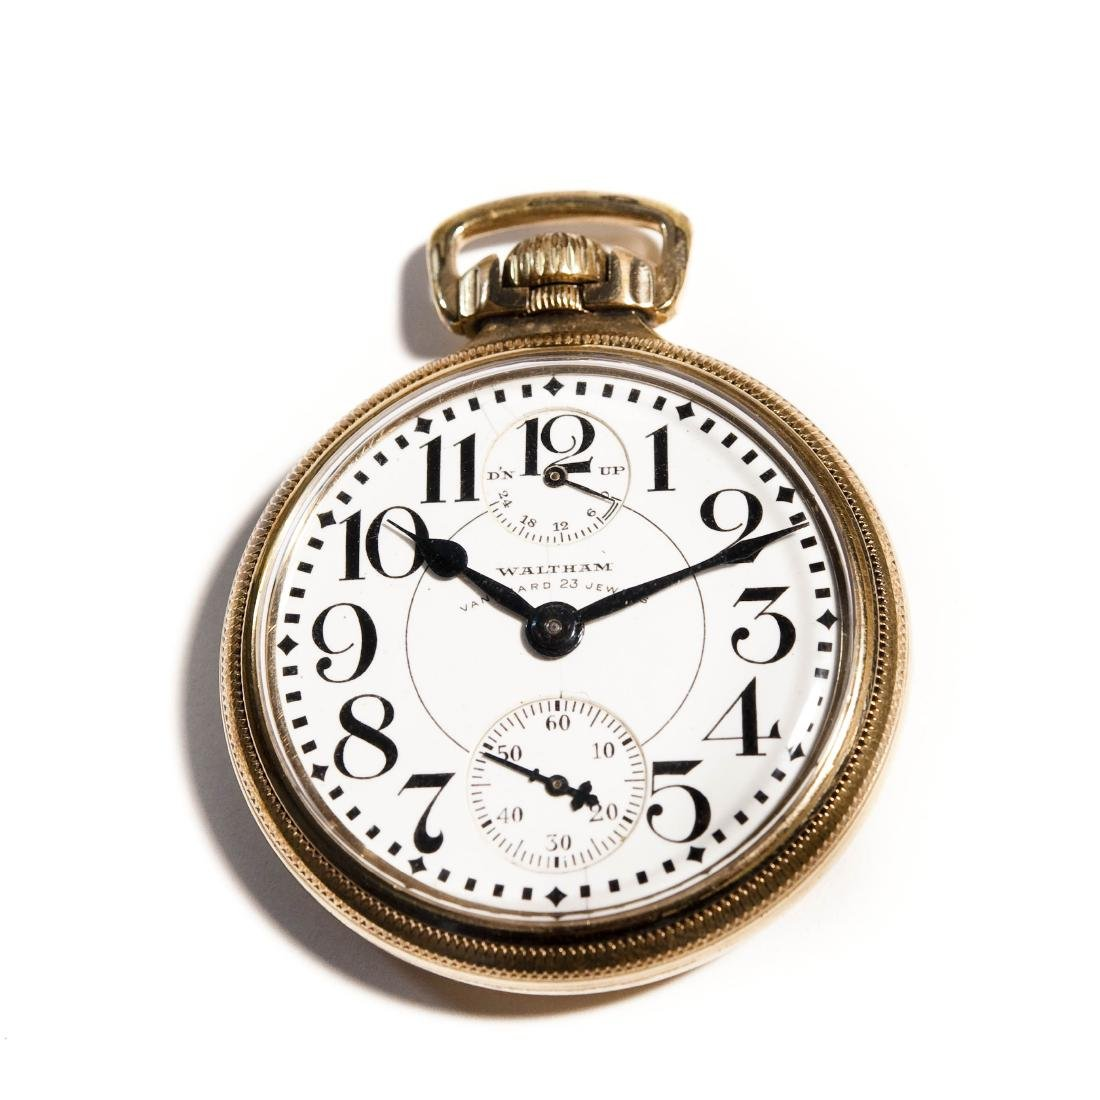 Waltham Vanguard Gold Filled Pocket Watch.